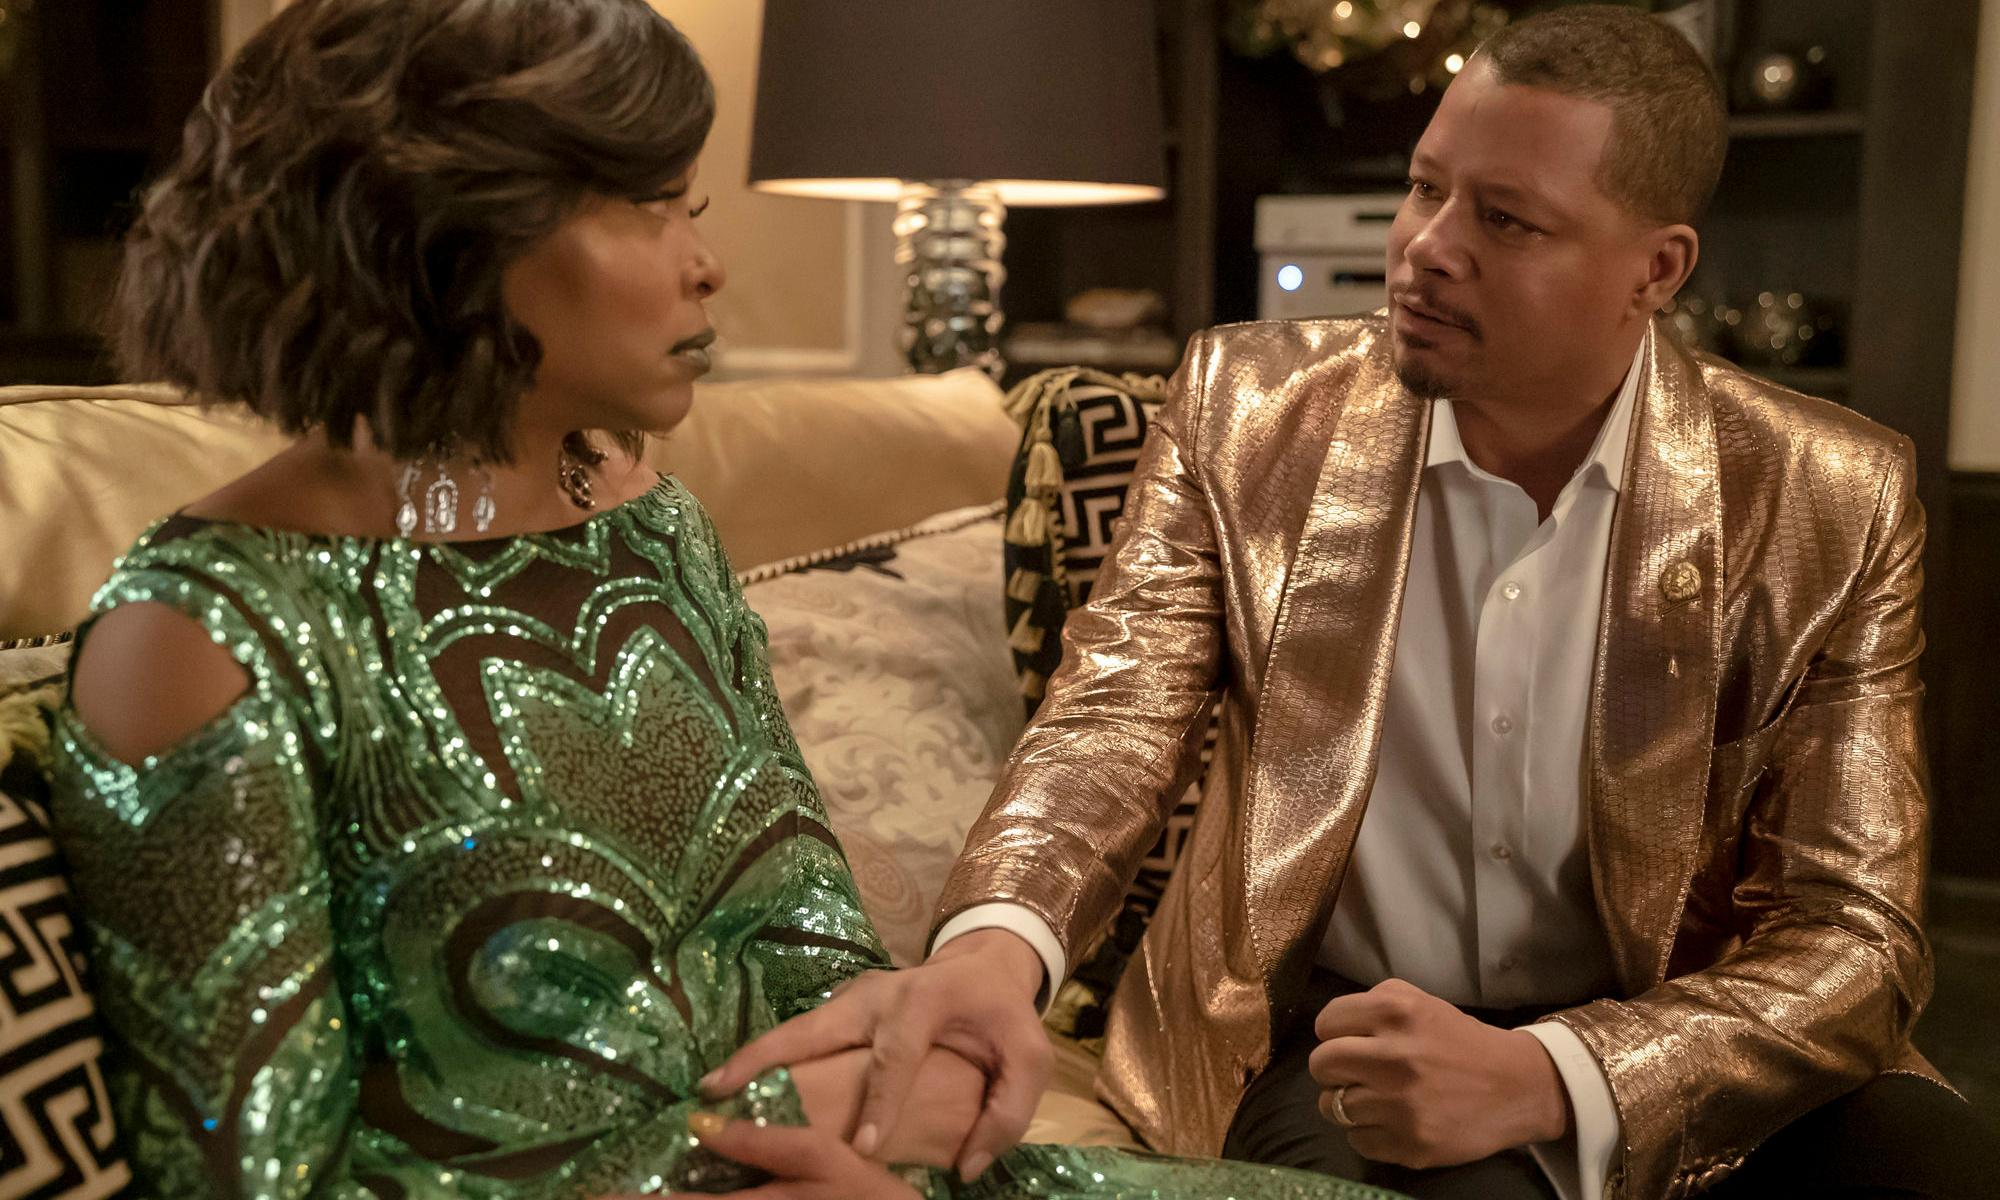 TV tonight: Empire returns for the first time since the Jussie Smollett saga